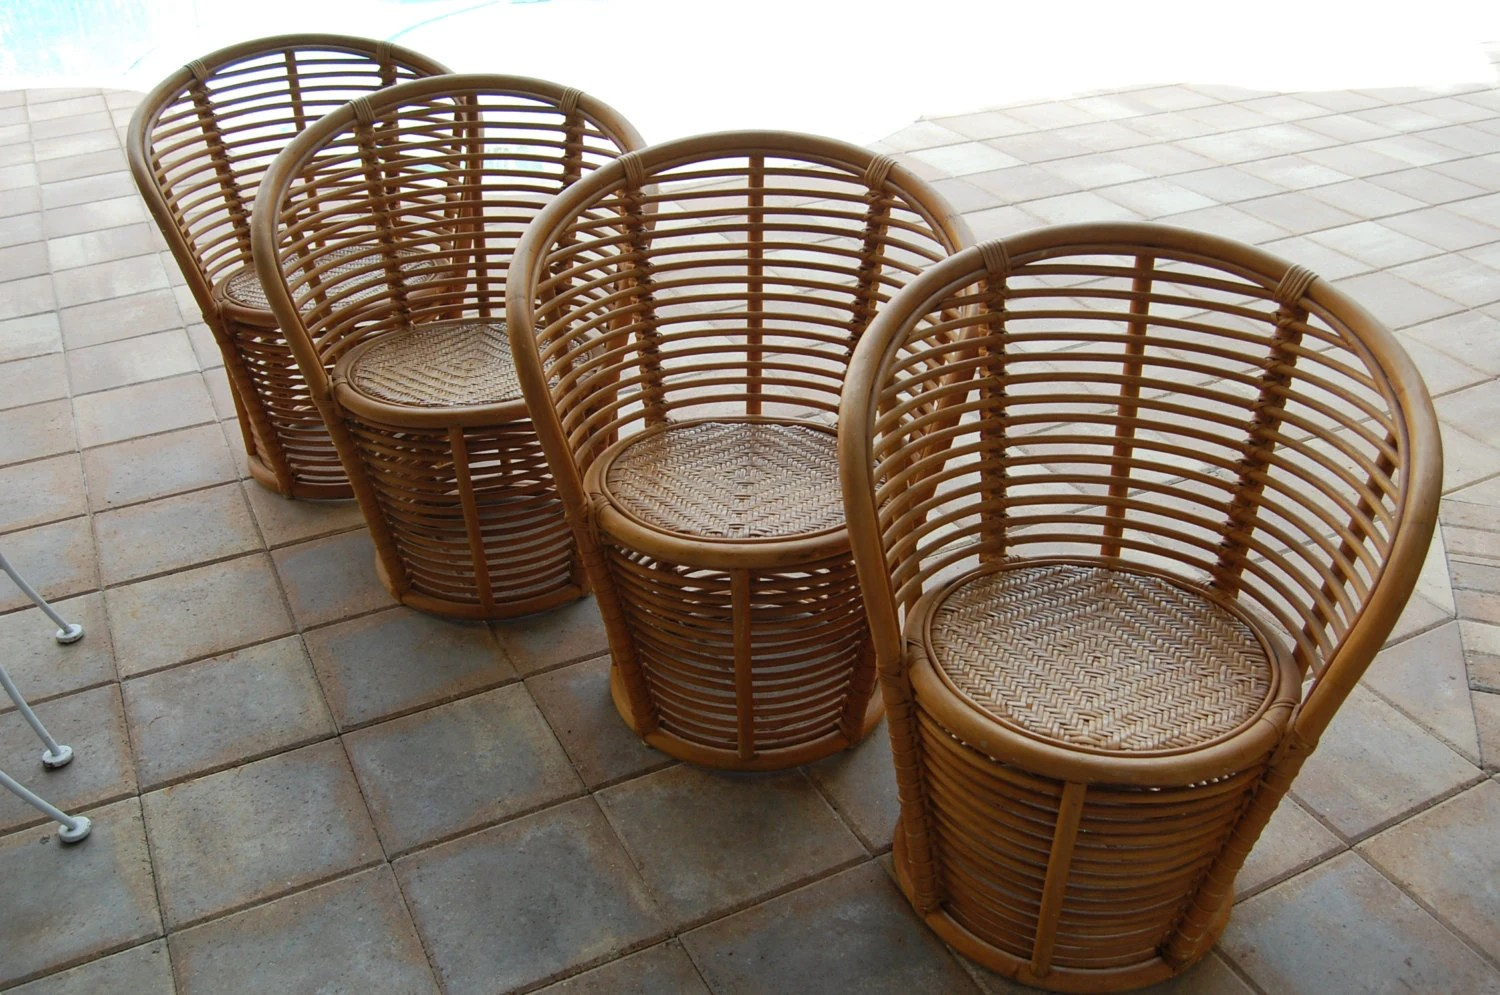 bamboo chairs for sale marc newson chair vintage rattan on palm beach regency style